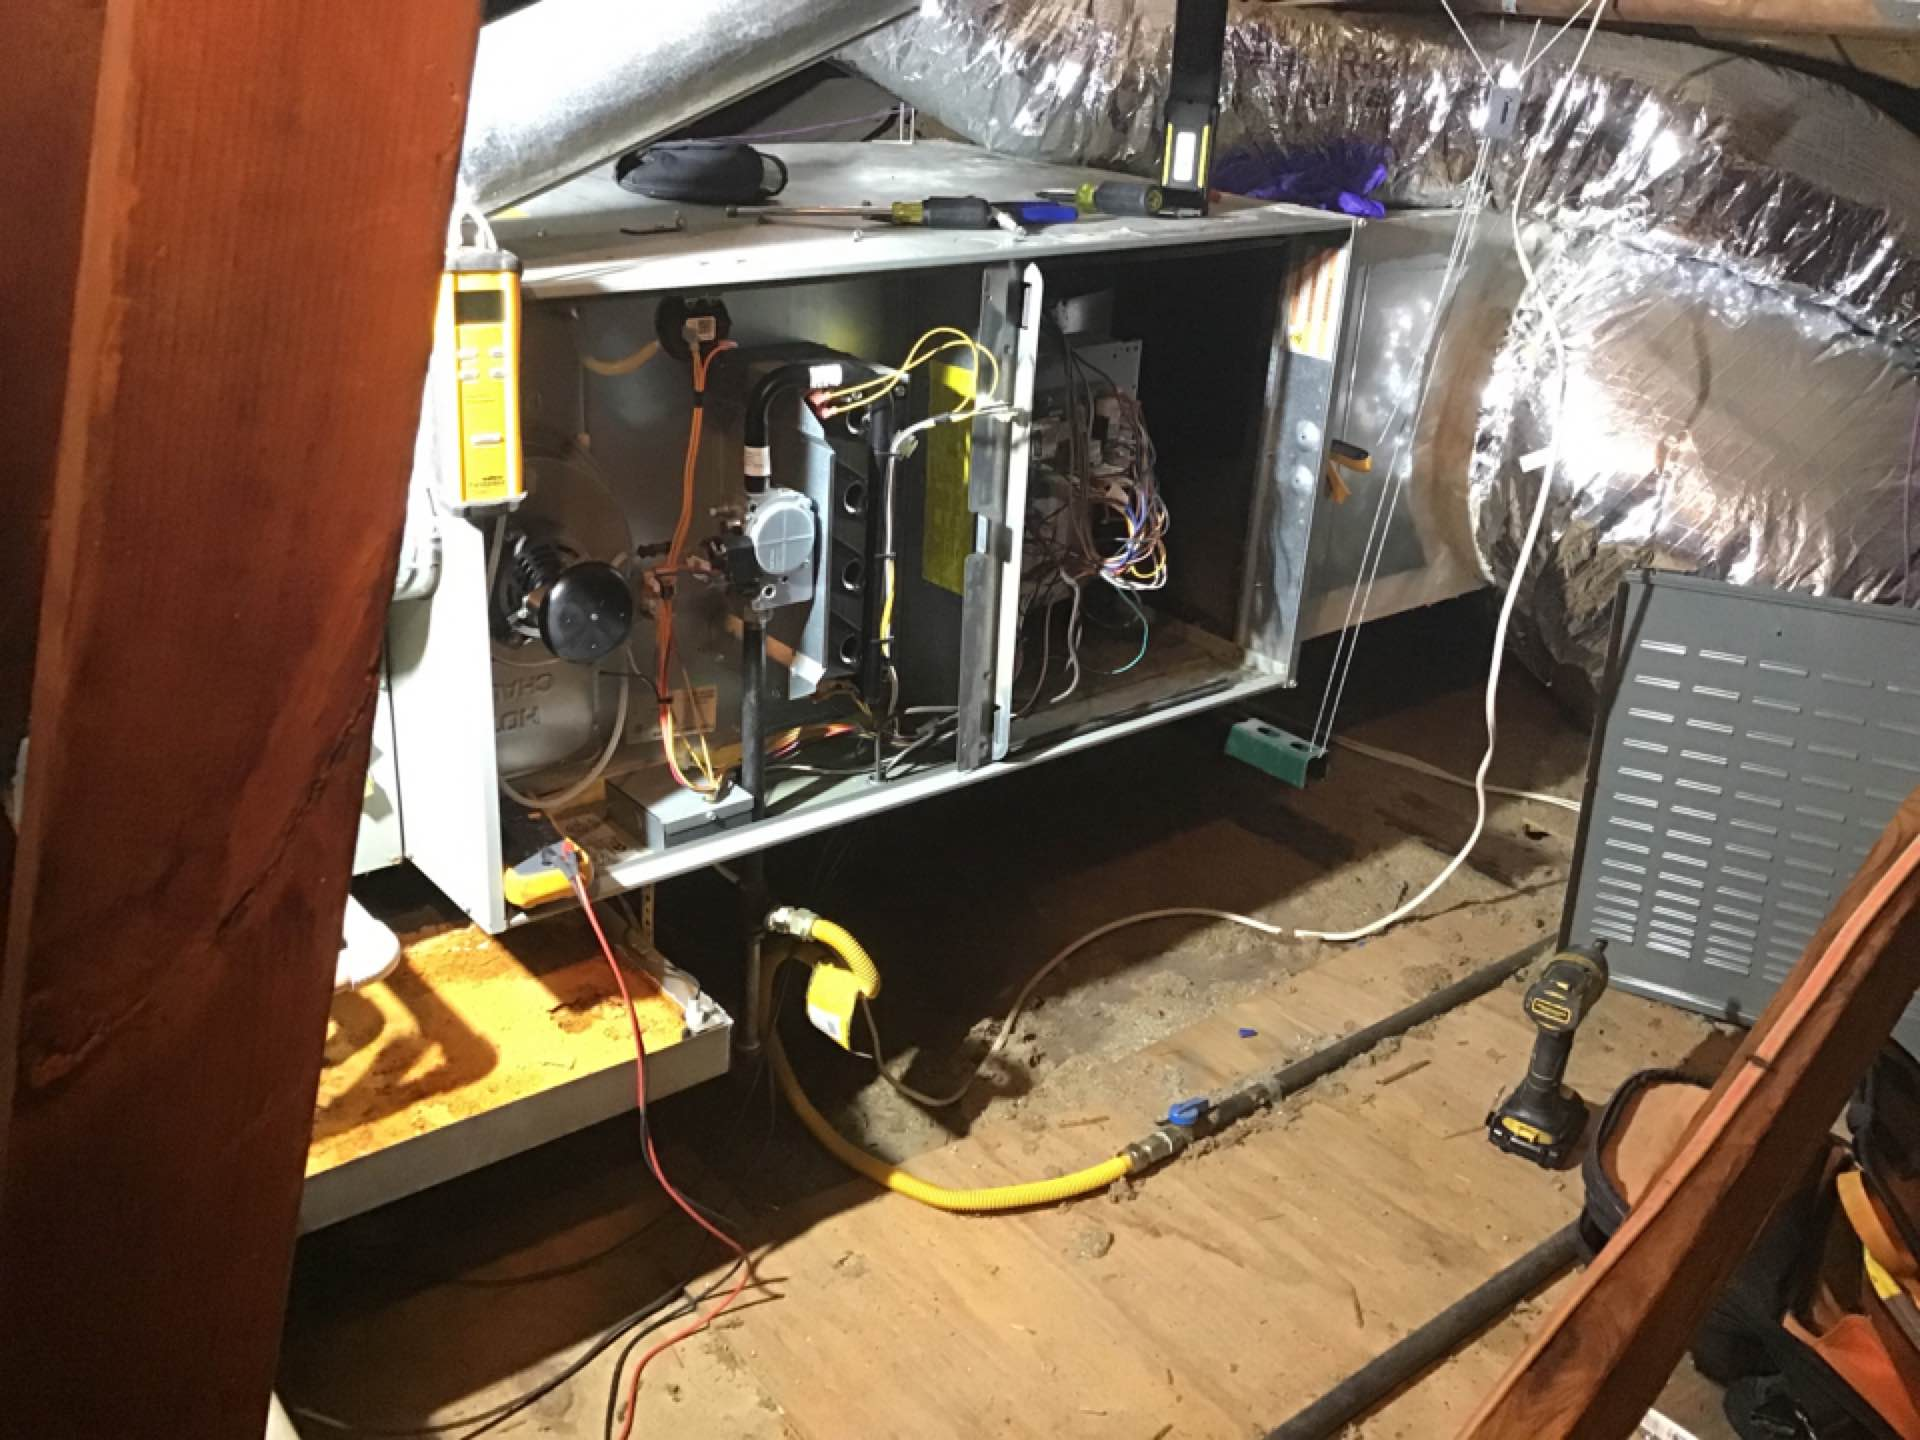 Completed annual heating tune up and safety check on a TRANE gas furnace in CARROLLTON.